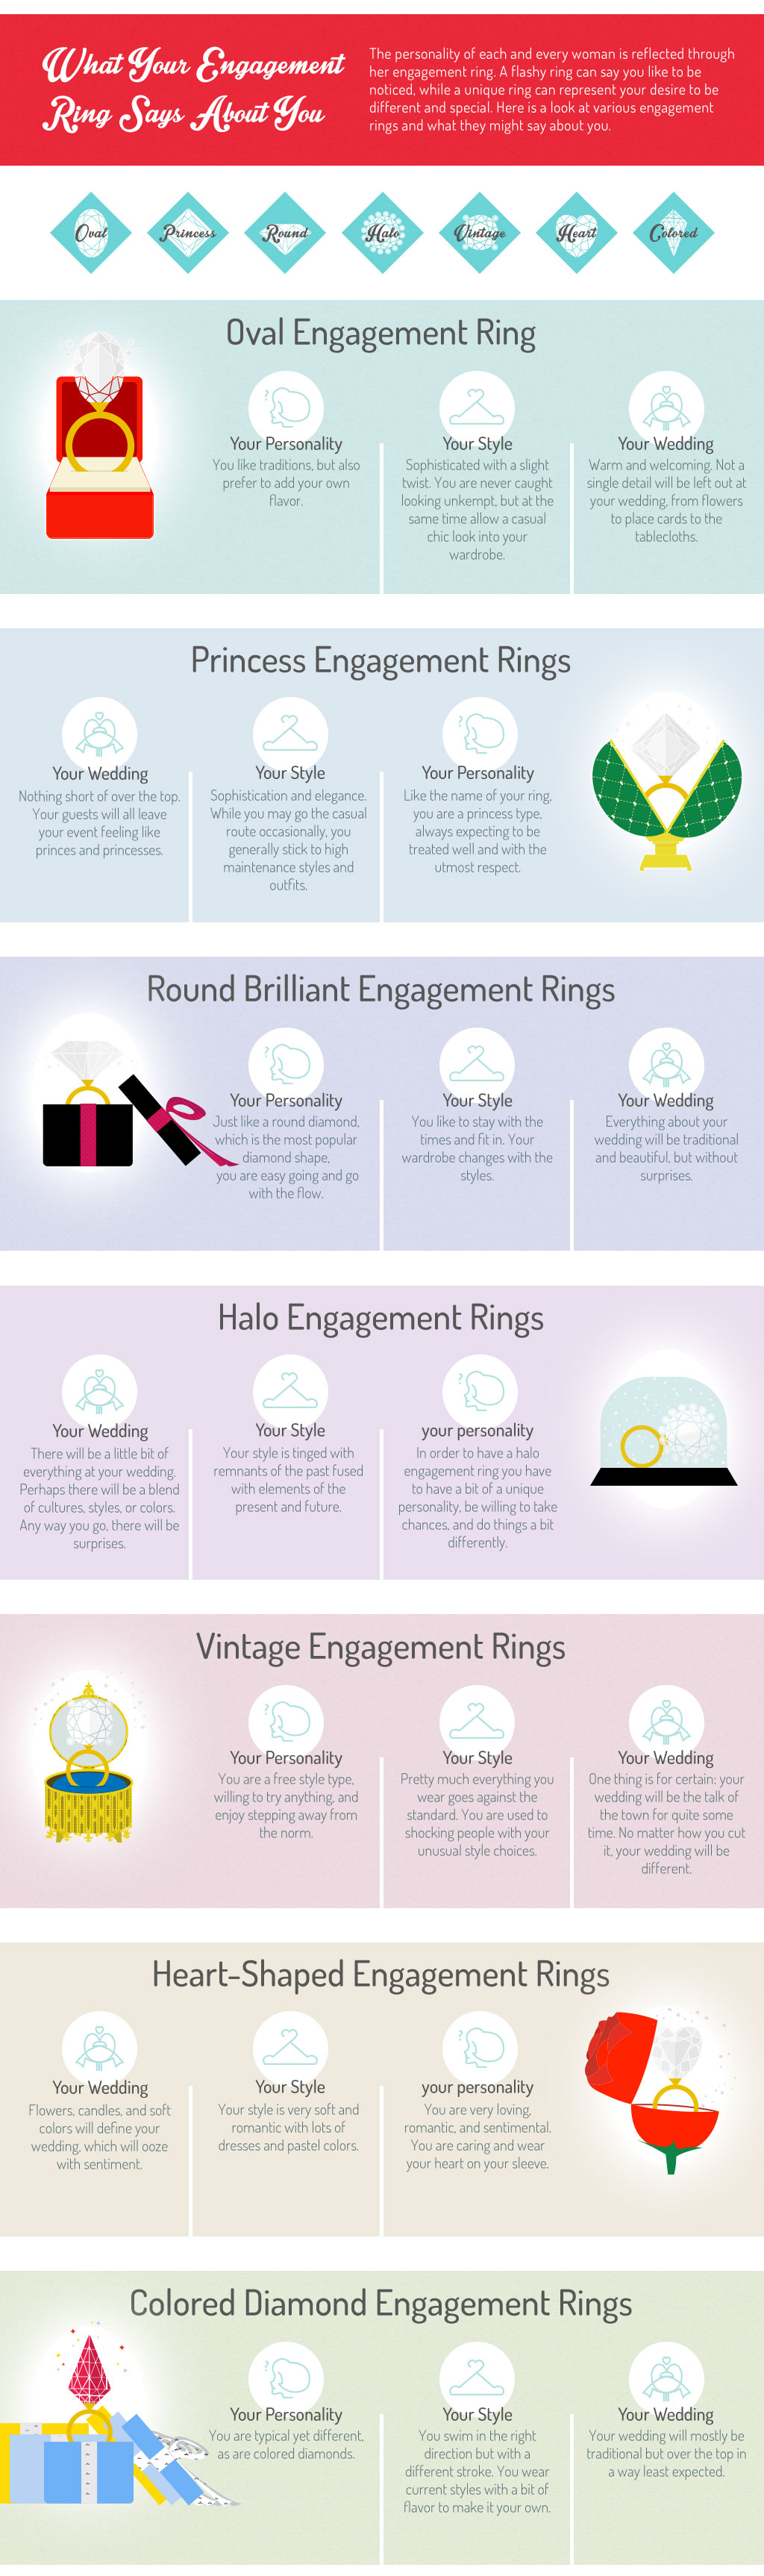 What Your Engagement Ring Says About You